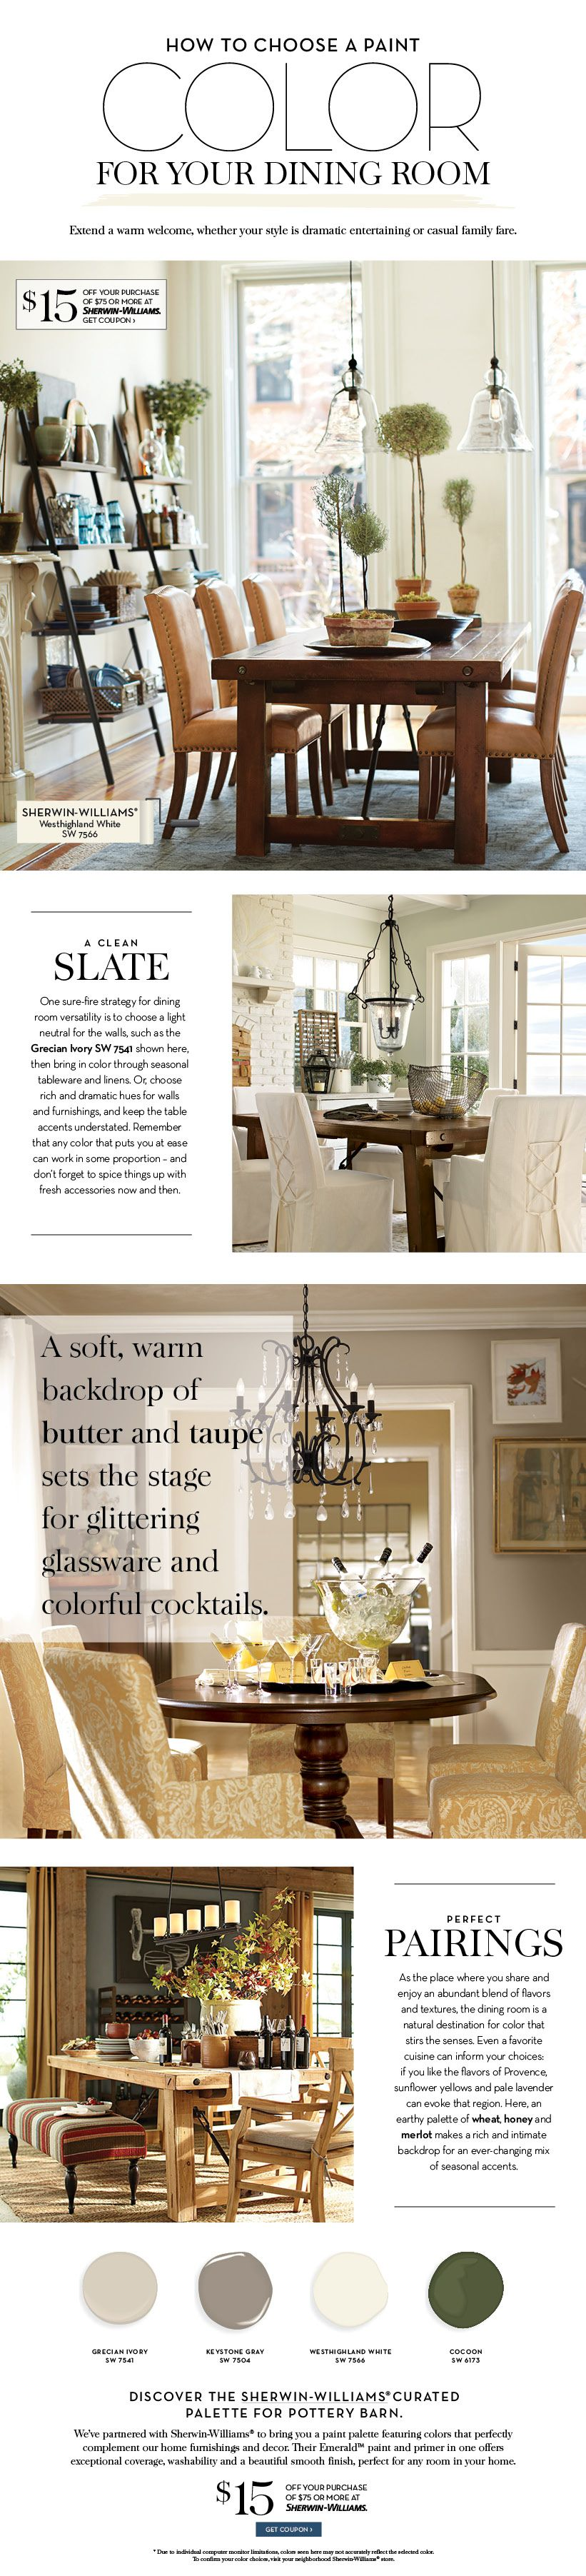 how to choose a paint colorHow To Choose a Paint Color For Your Dining Room  Design Trend